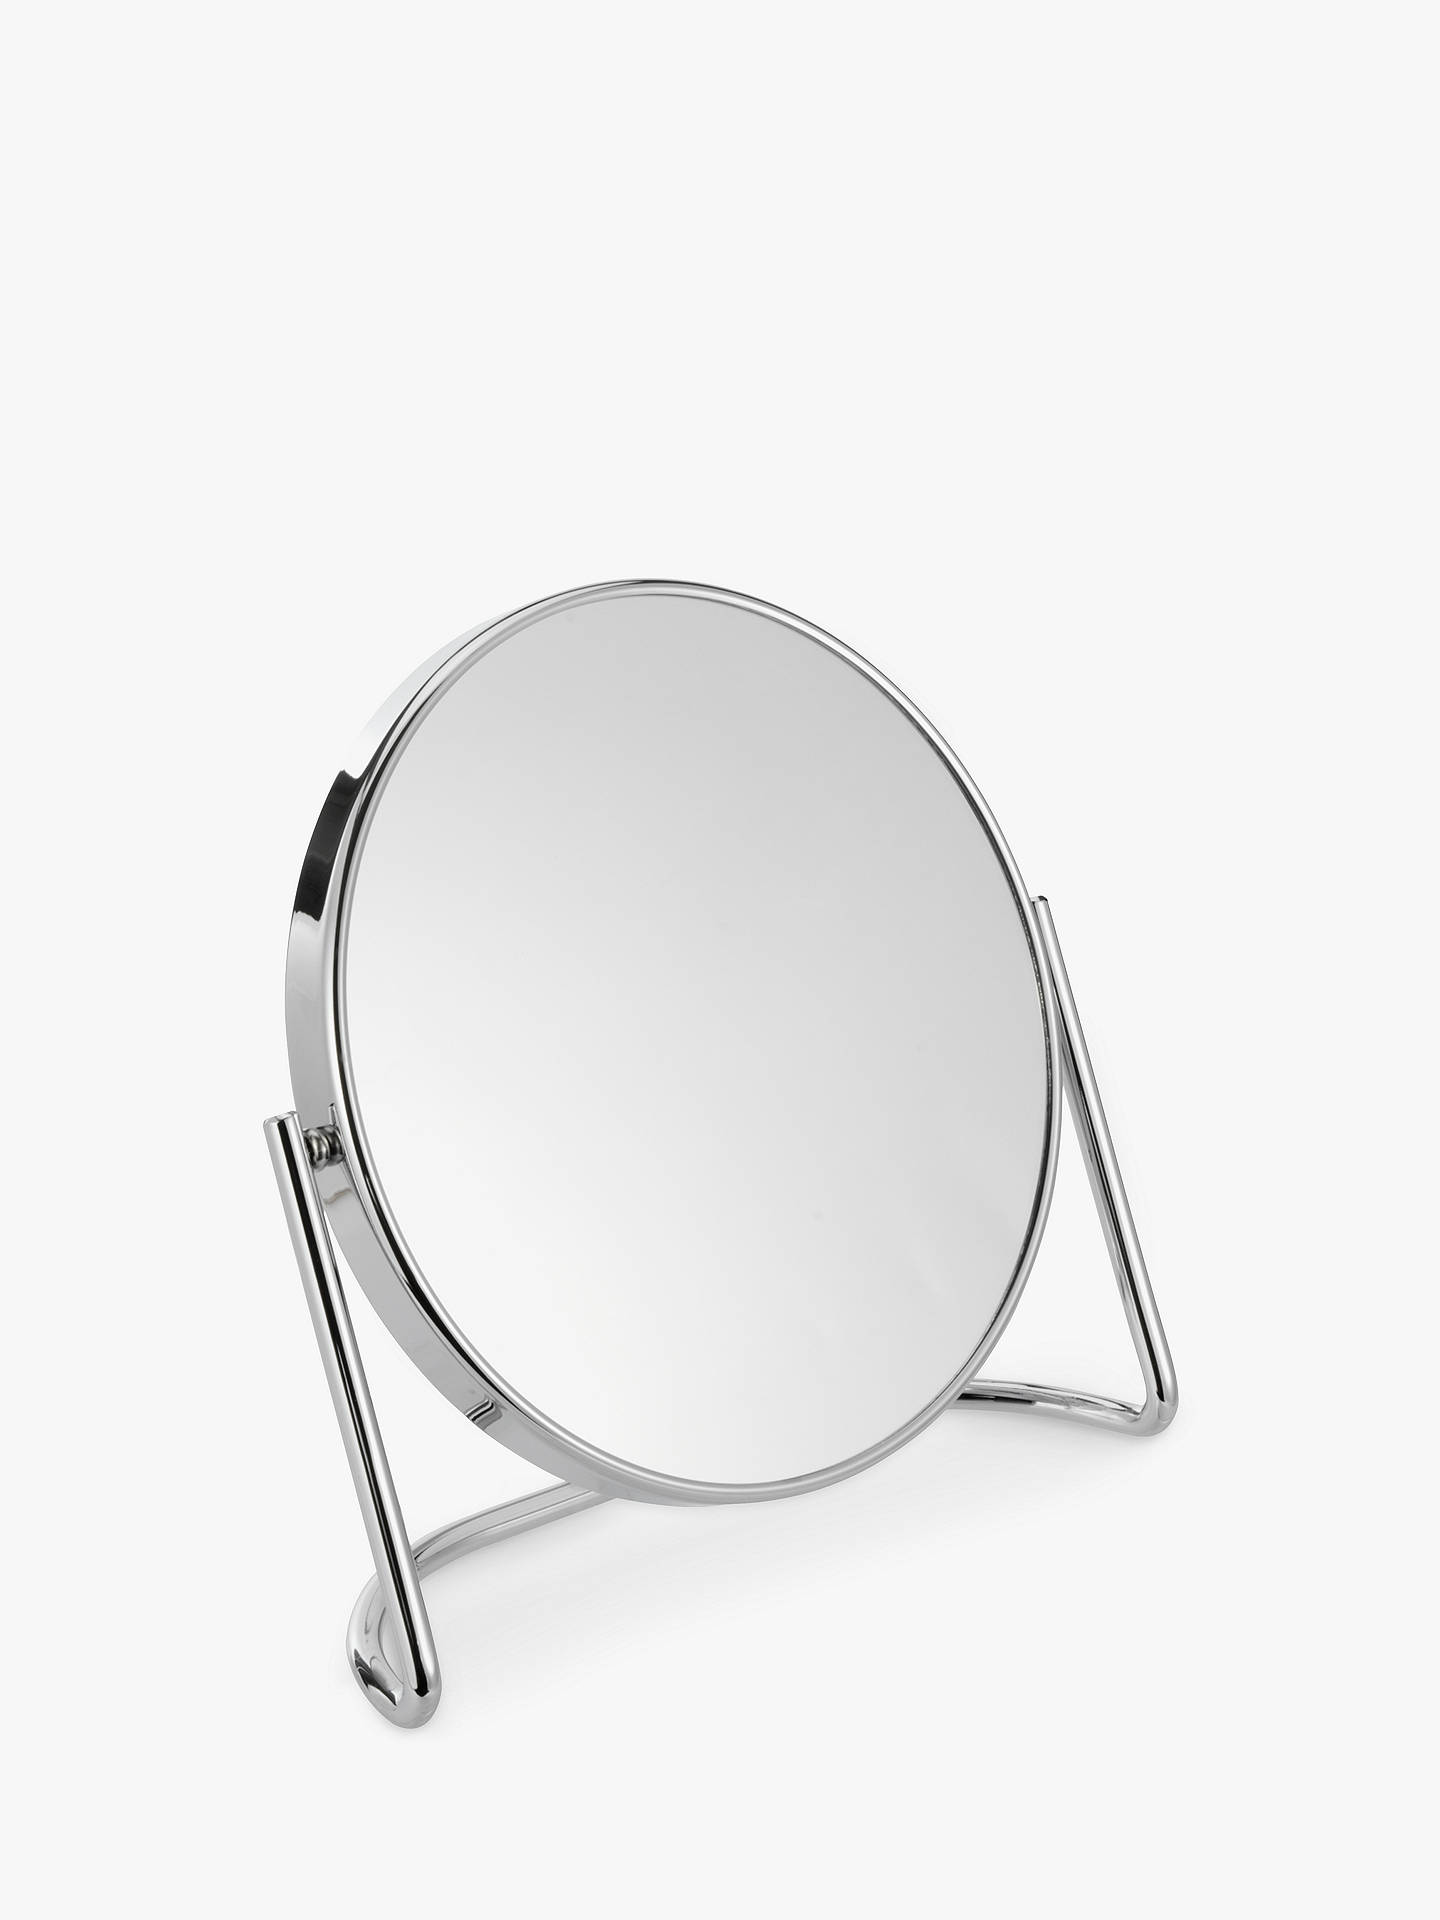 BuyJohn Lewis & Partners D-Stand 7x Magnification Mirror, Chrome Online at johnlewis.com